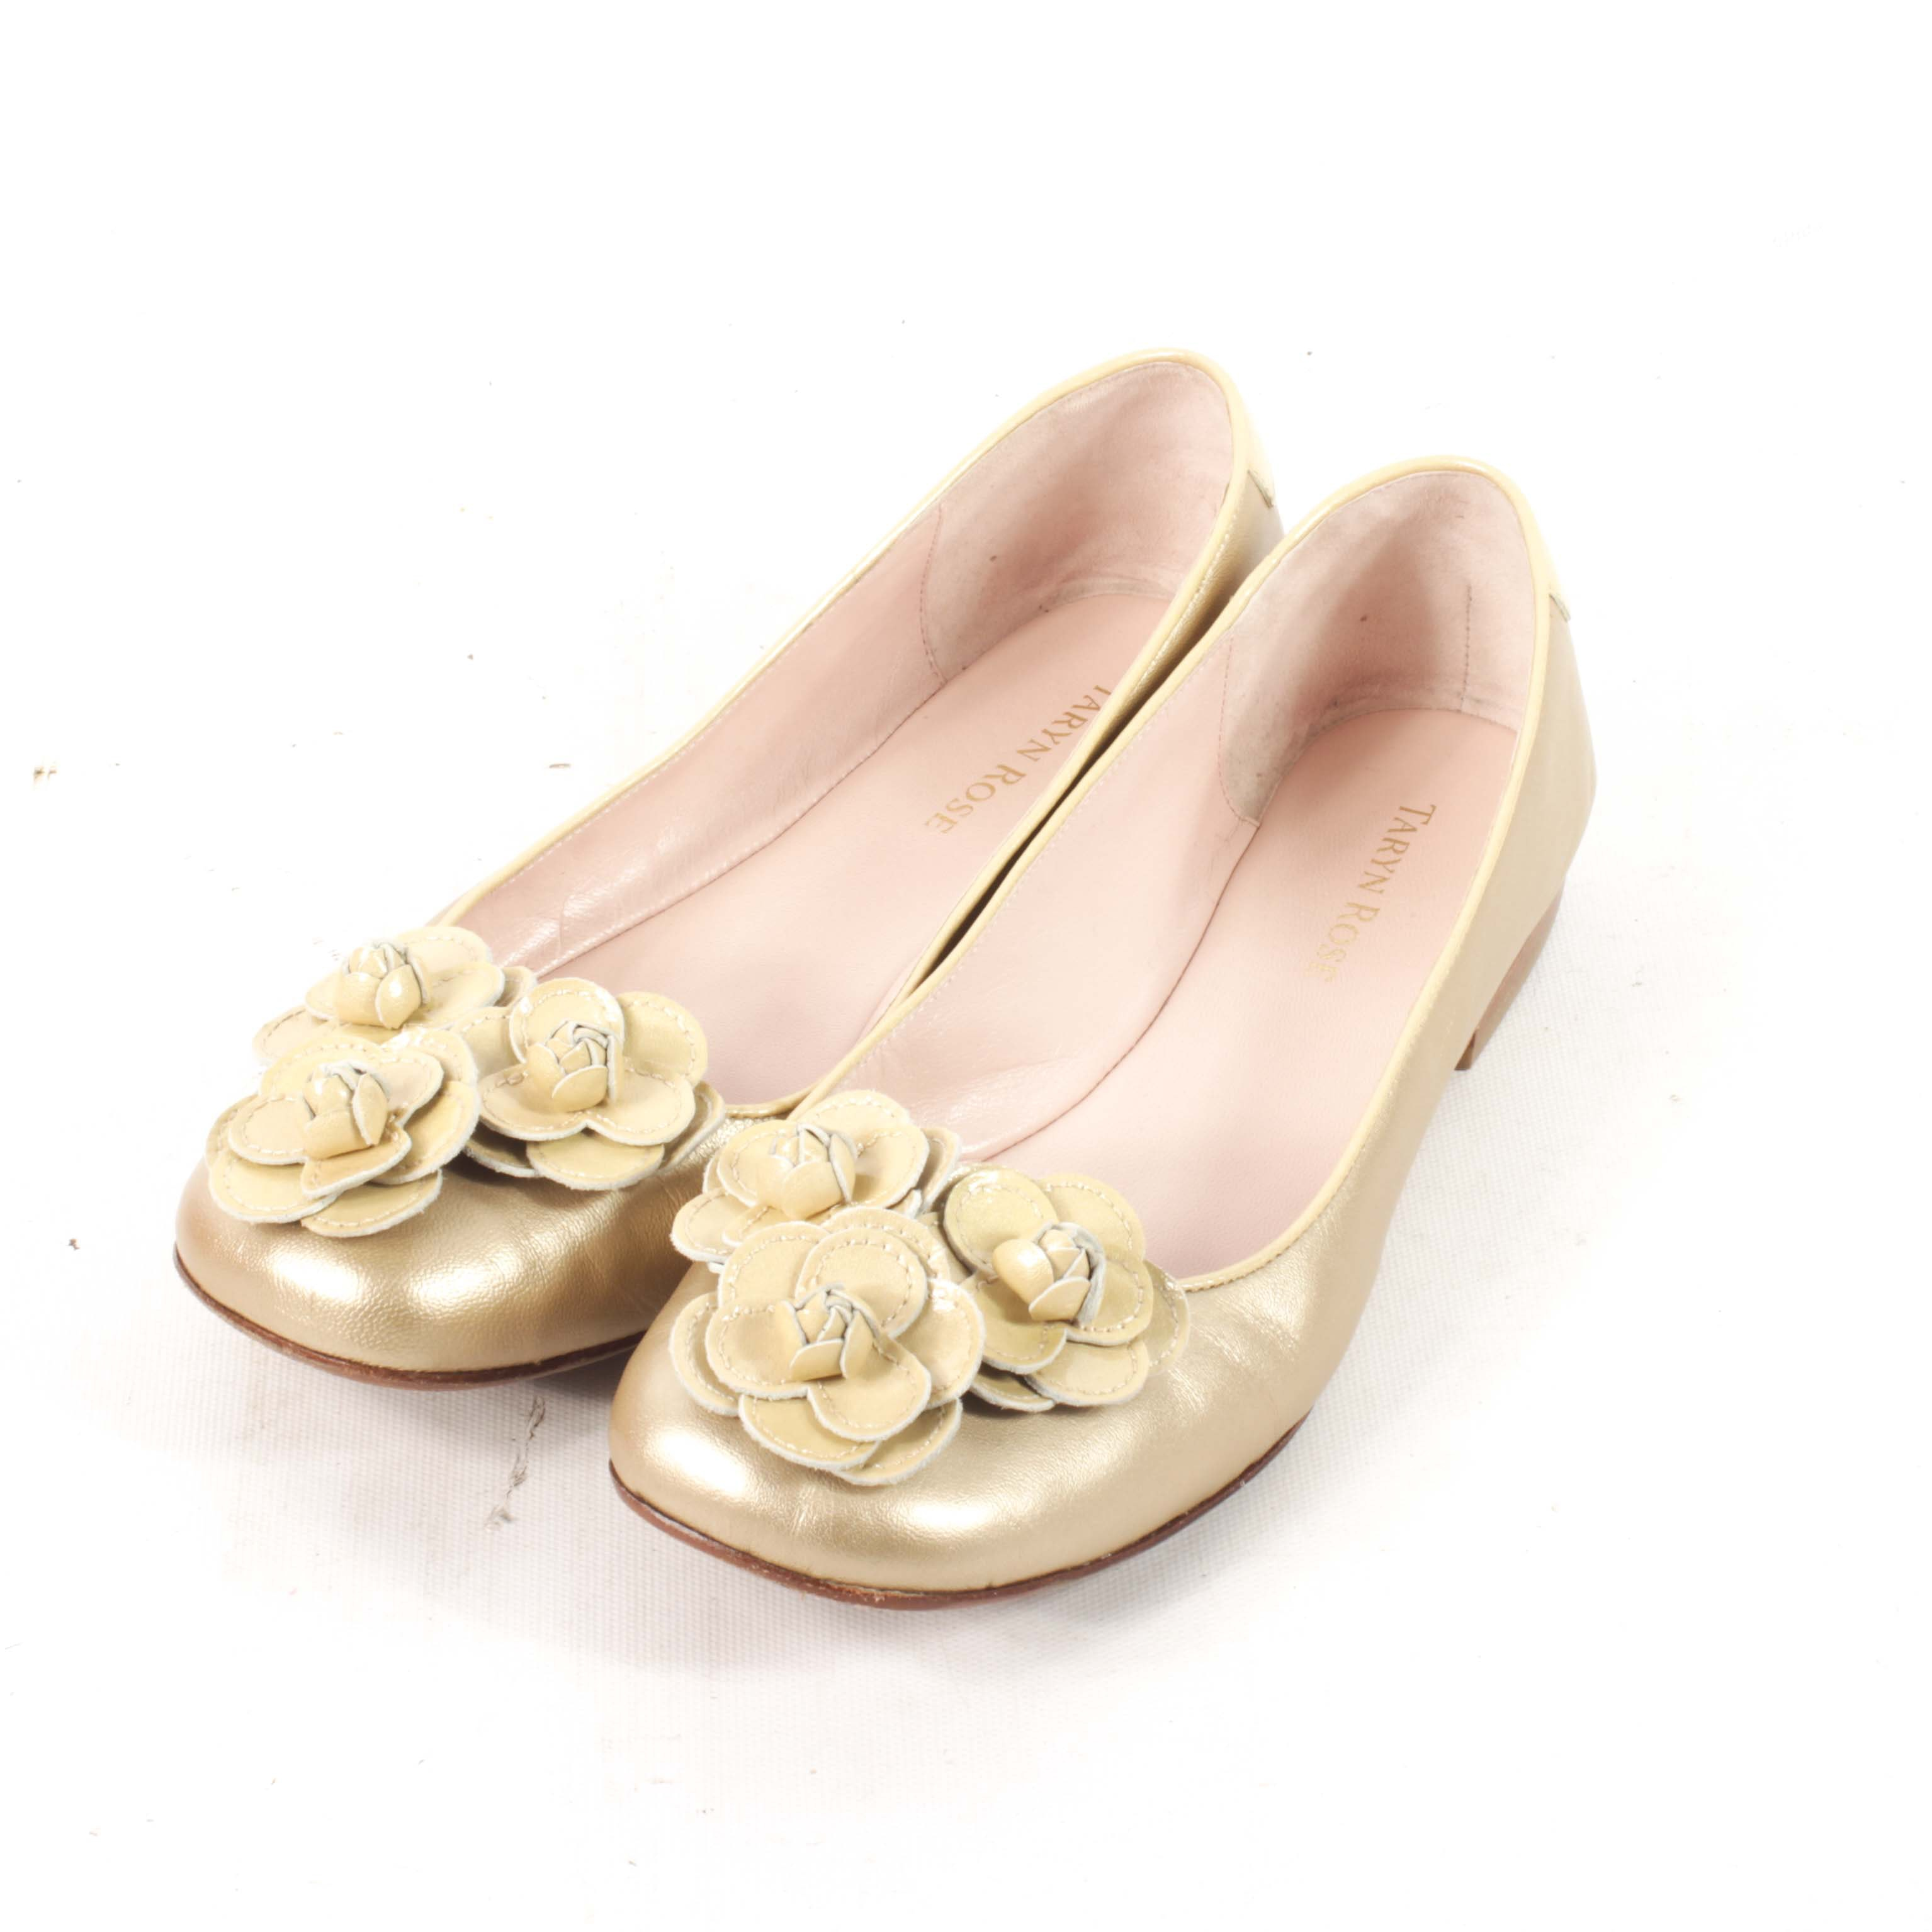 Women's Taryn Rose Gold Metallic Leather Flats with Rosettes